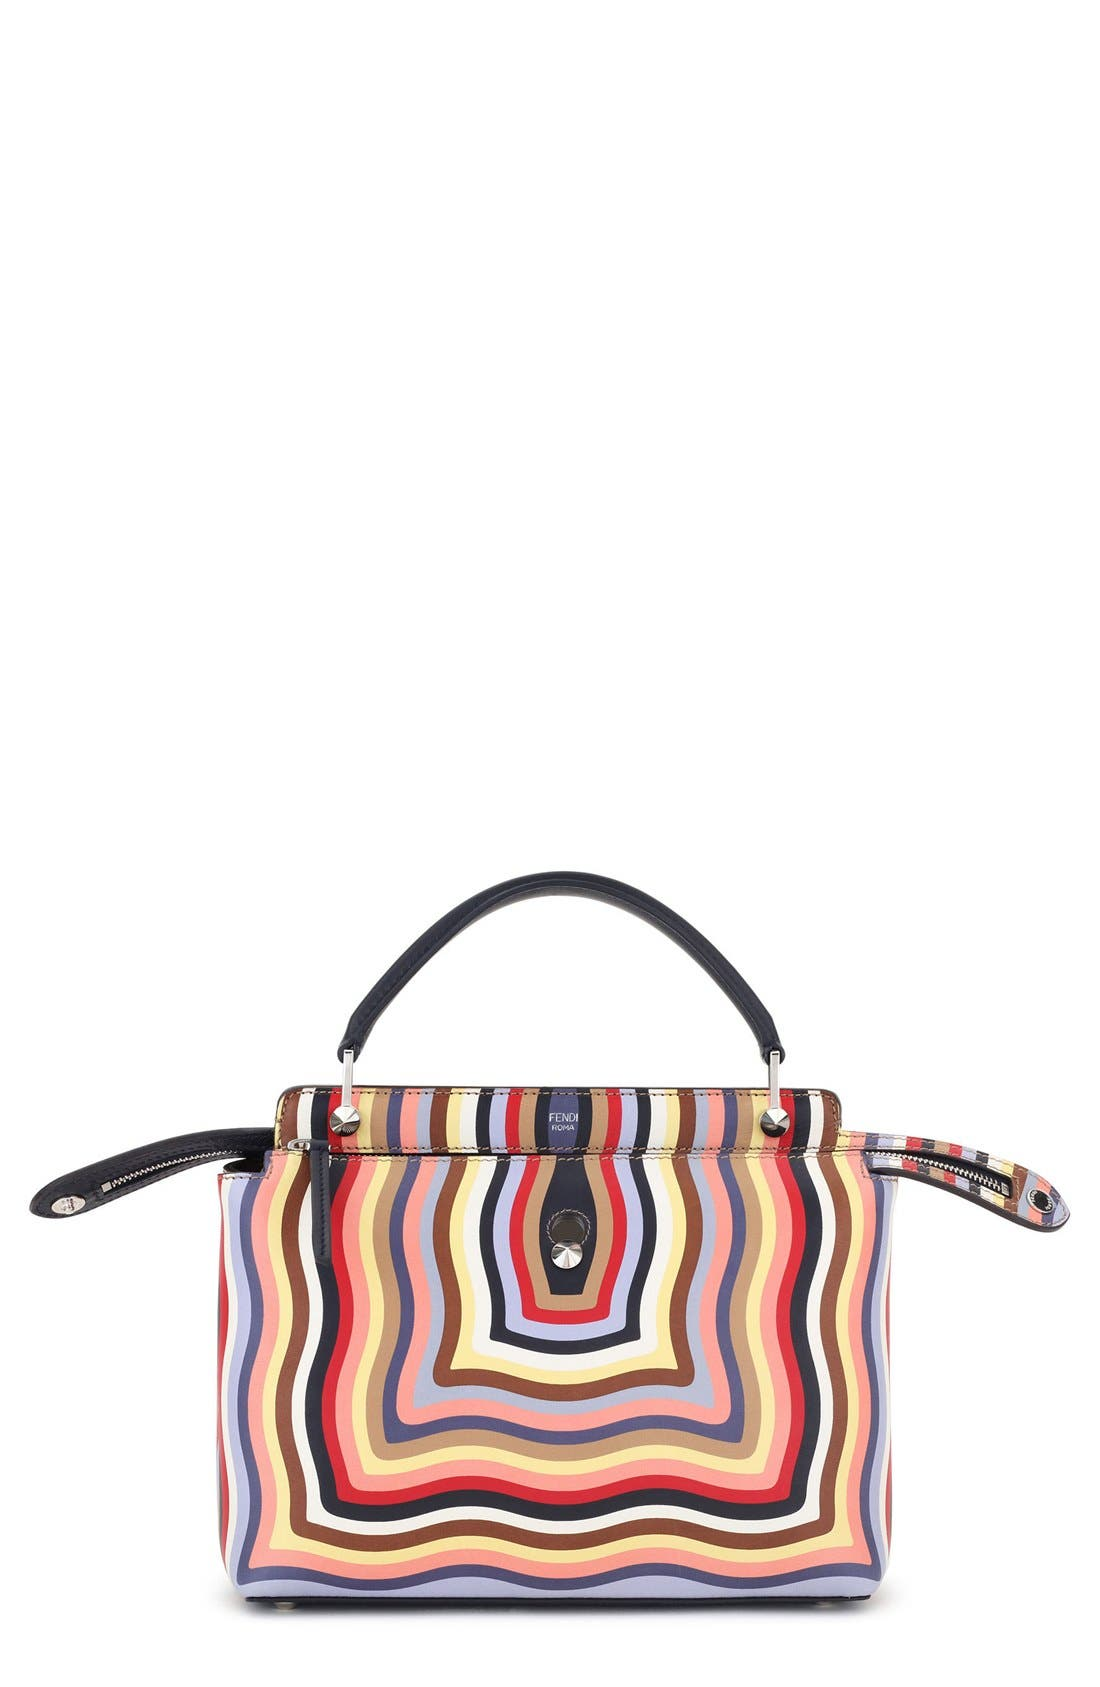 FENDI DOTCOM Hypnotic Wave Leather Satchel